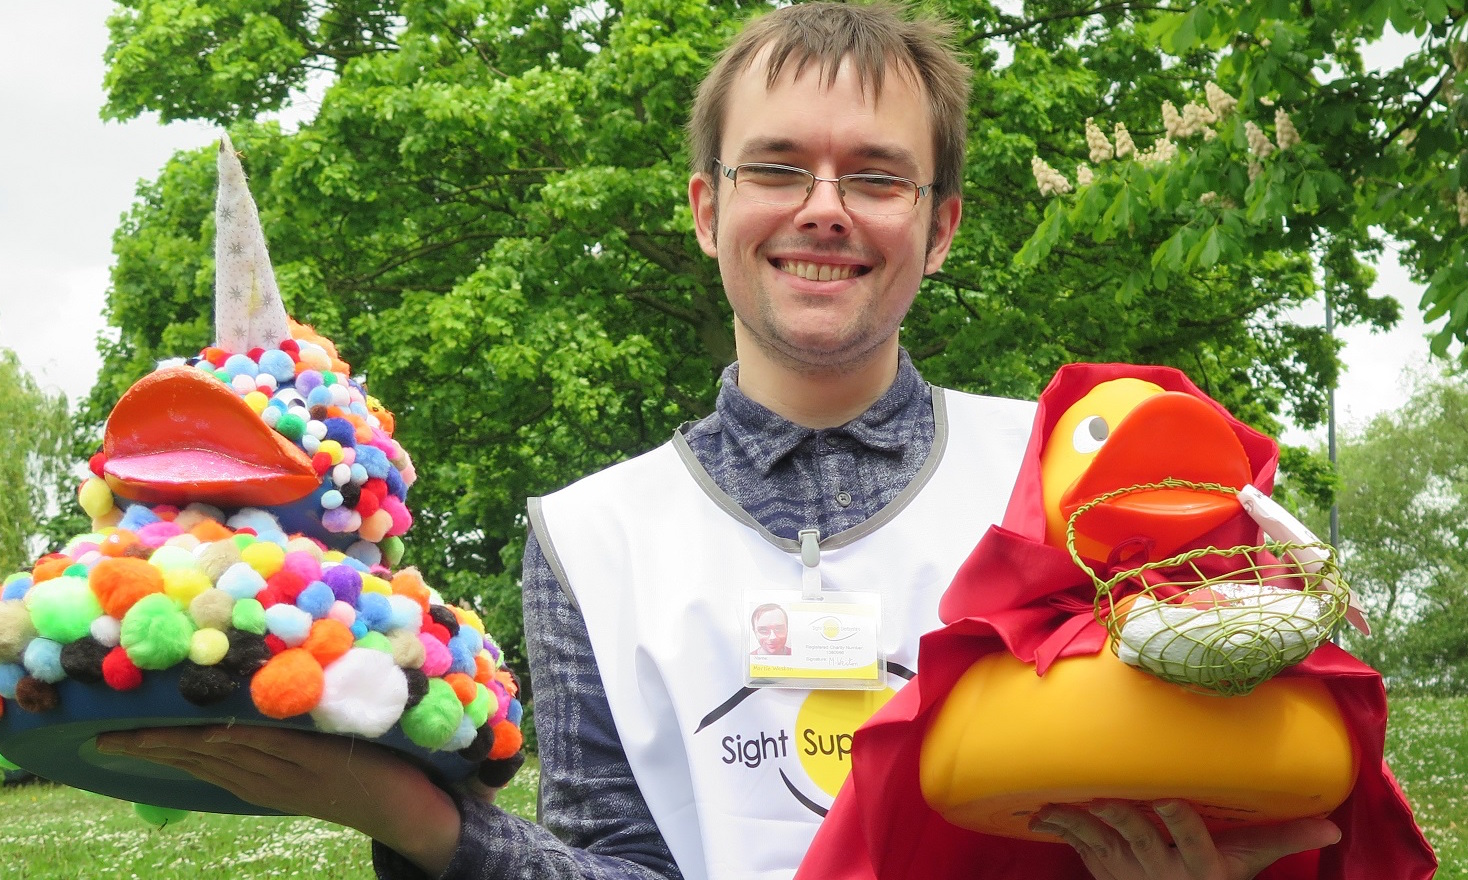 Image showing volunteer holding ducks at the duck race